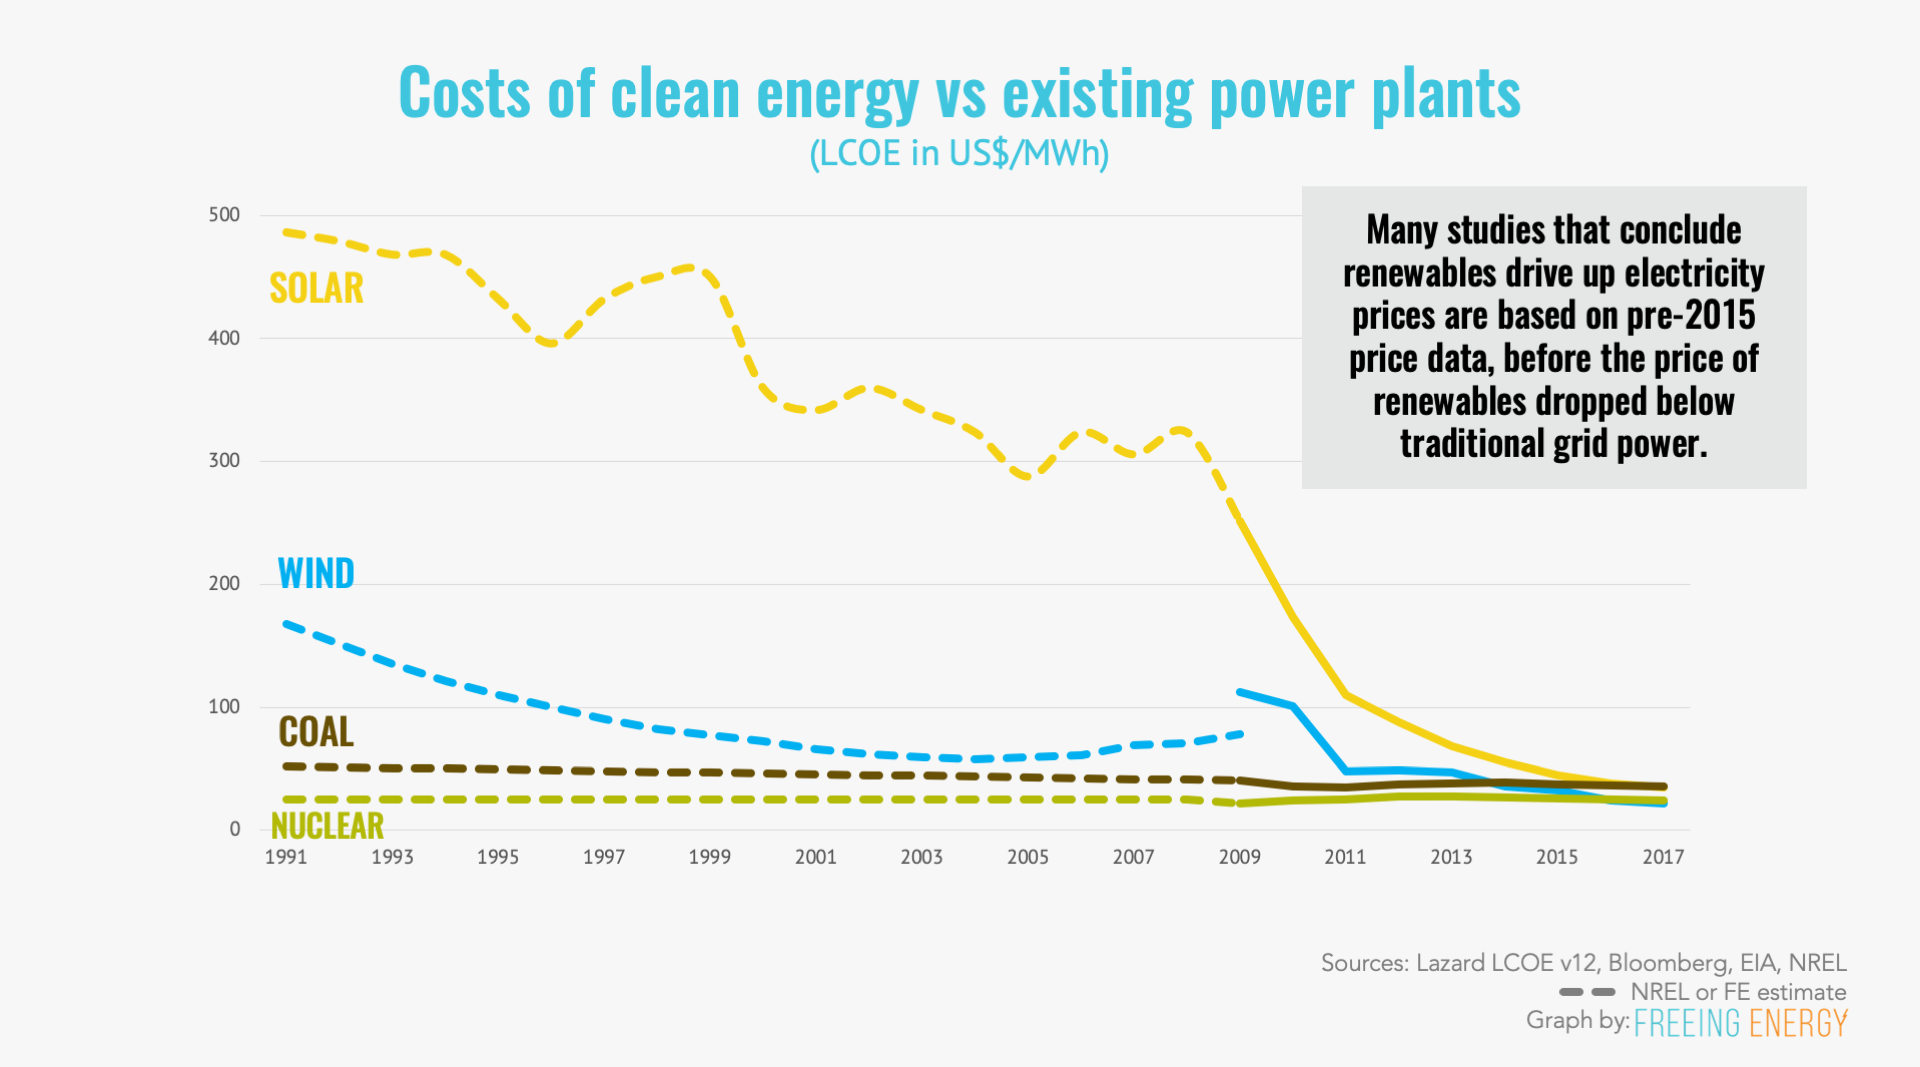 Cost of clean renewable energy vs existing power plants in LCOE ($/MWh)